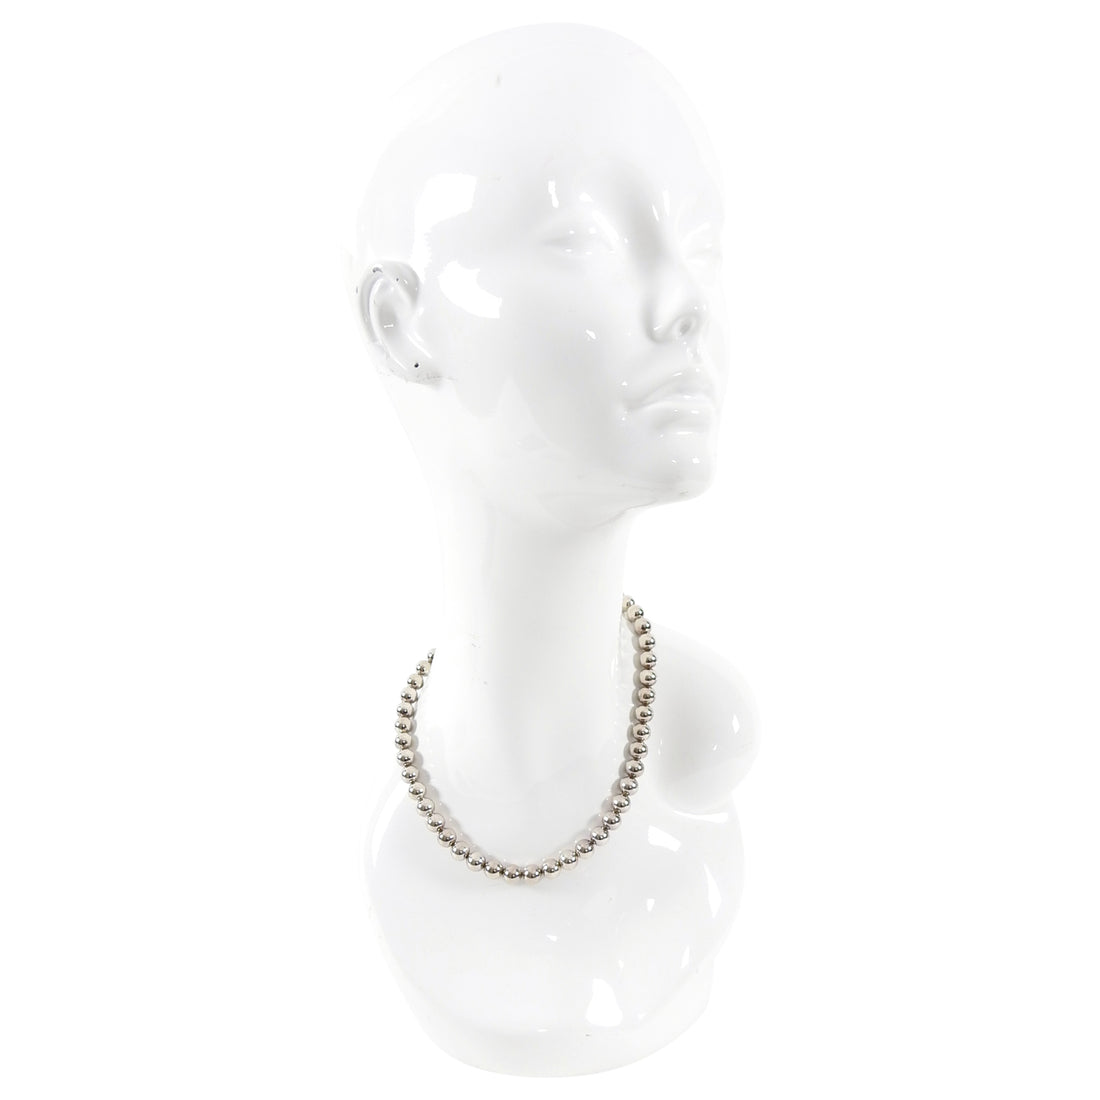 Tiffany and Co. Hardwear Sterling Silver Ball Bead Necklace